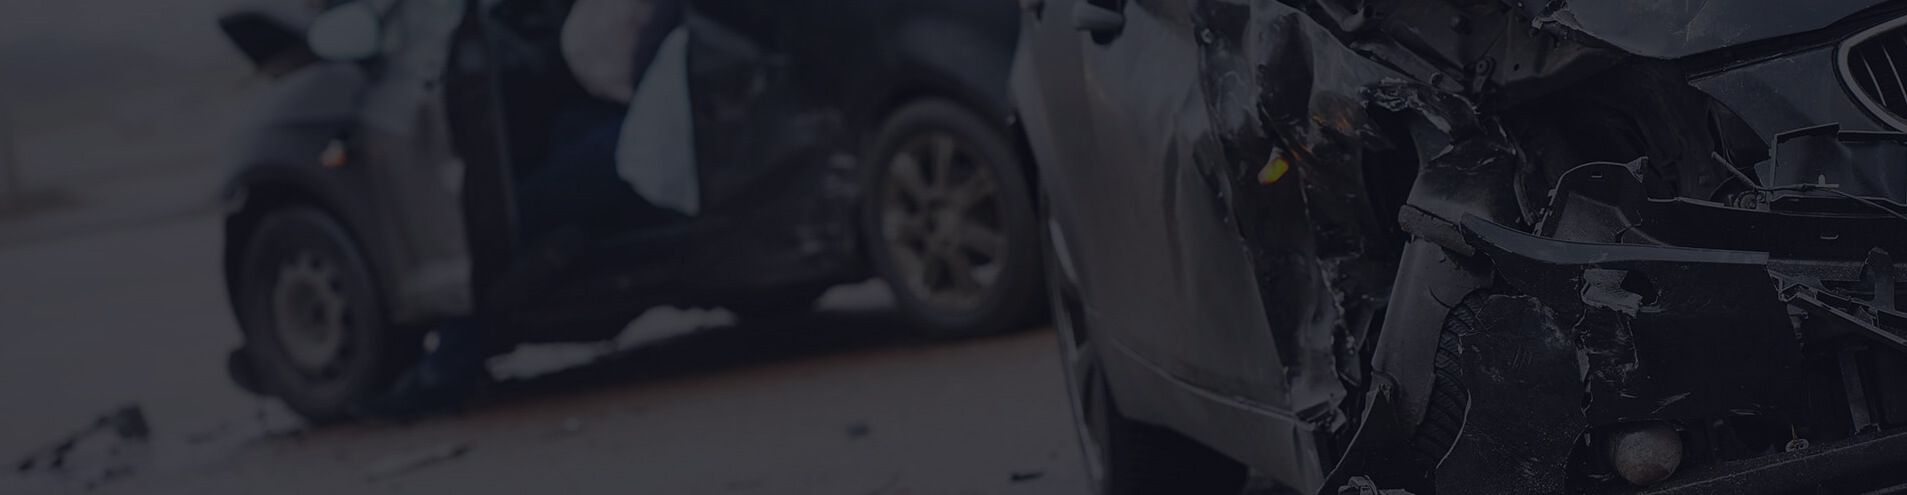 Your Rights in an Uber Accident | Sacramento Personal Injury